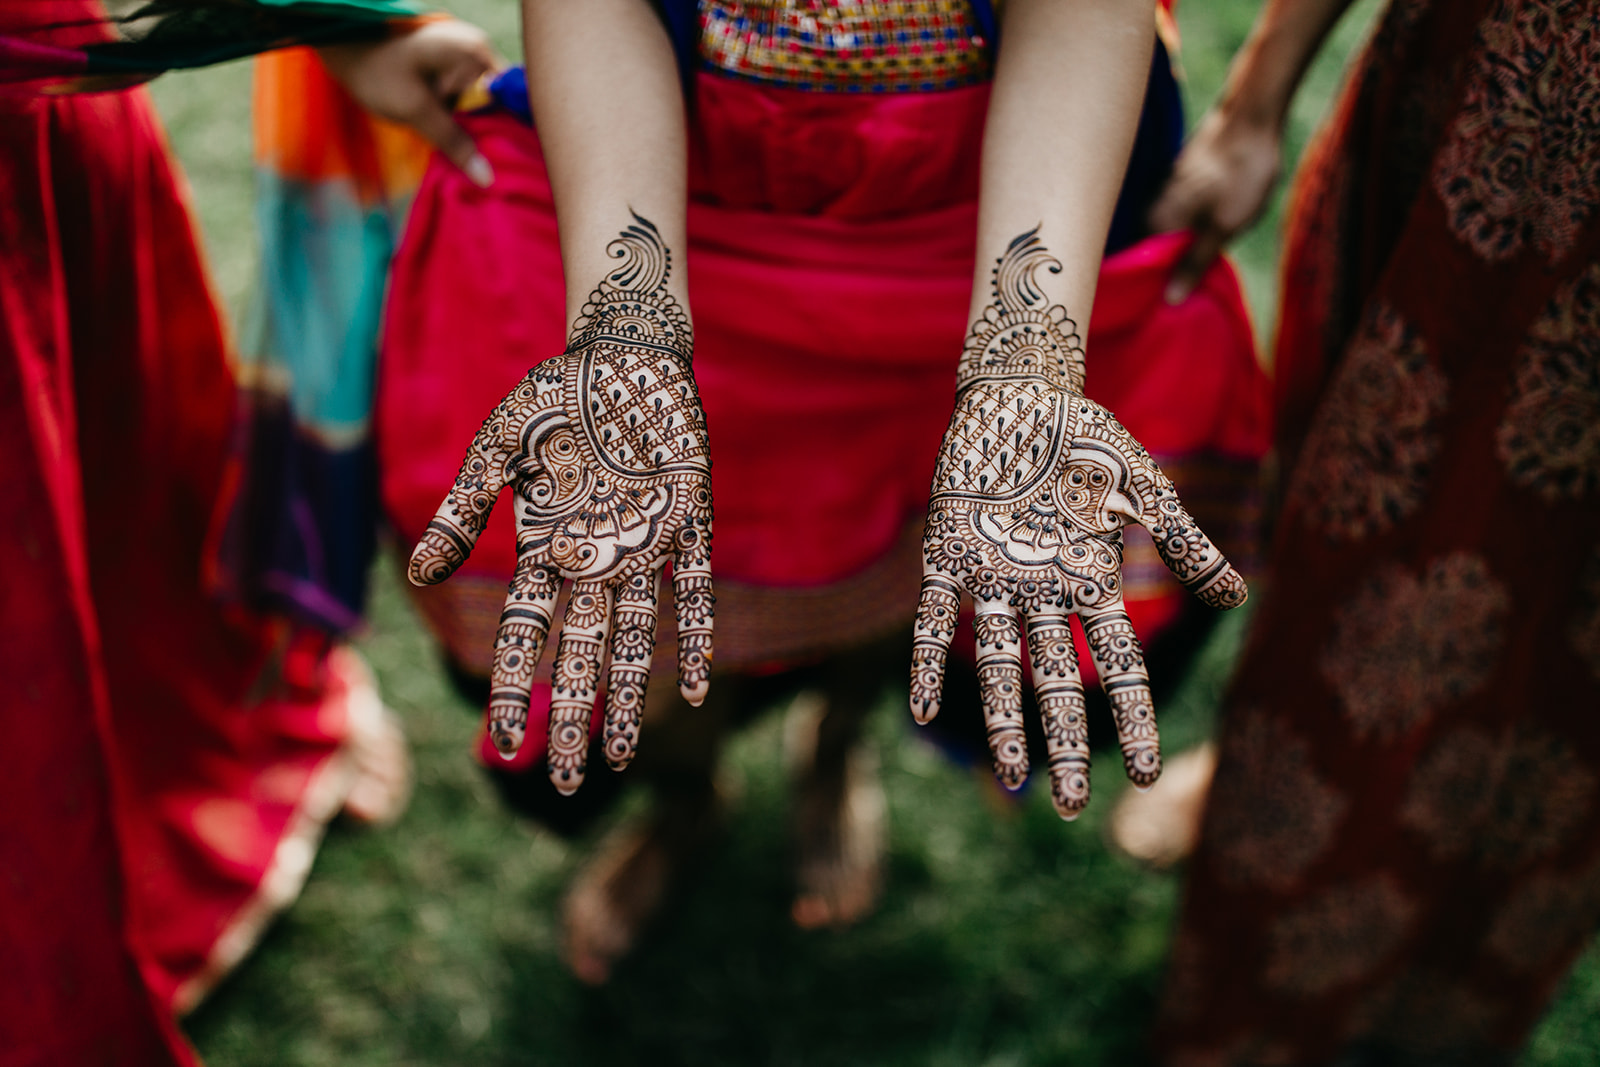 A photo of a bride shows off her Hands with Henna Mehndi for Wedding